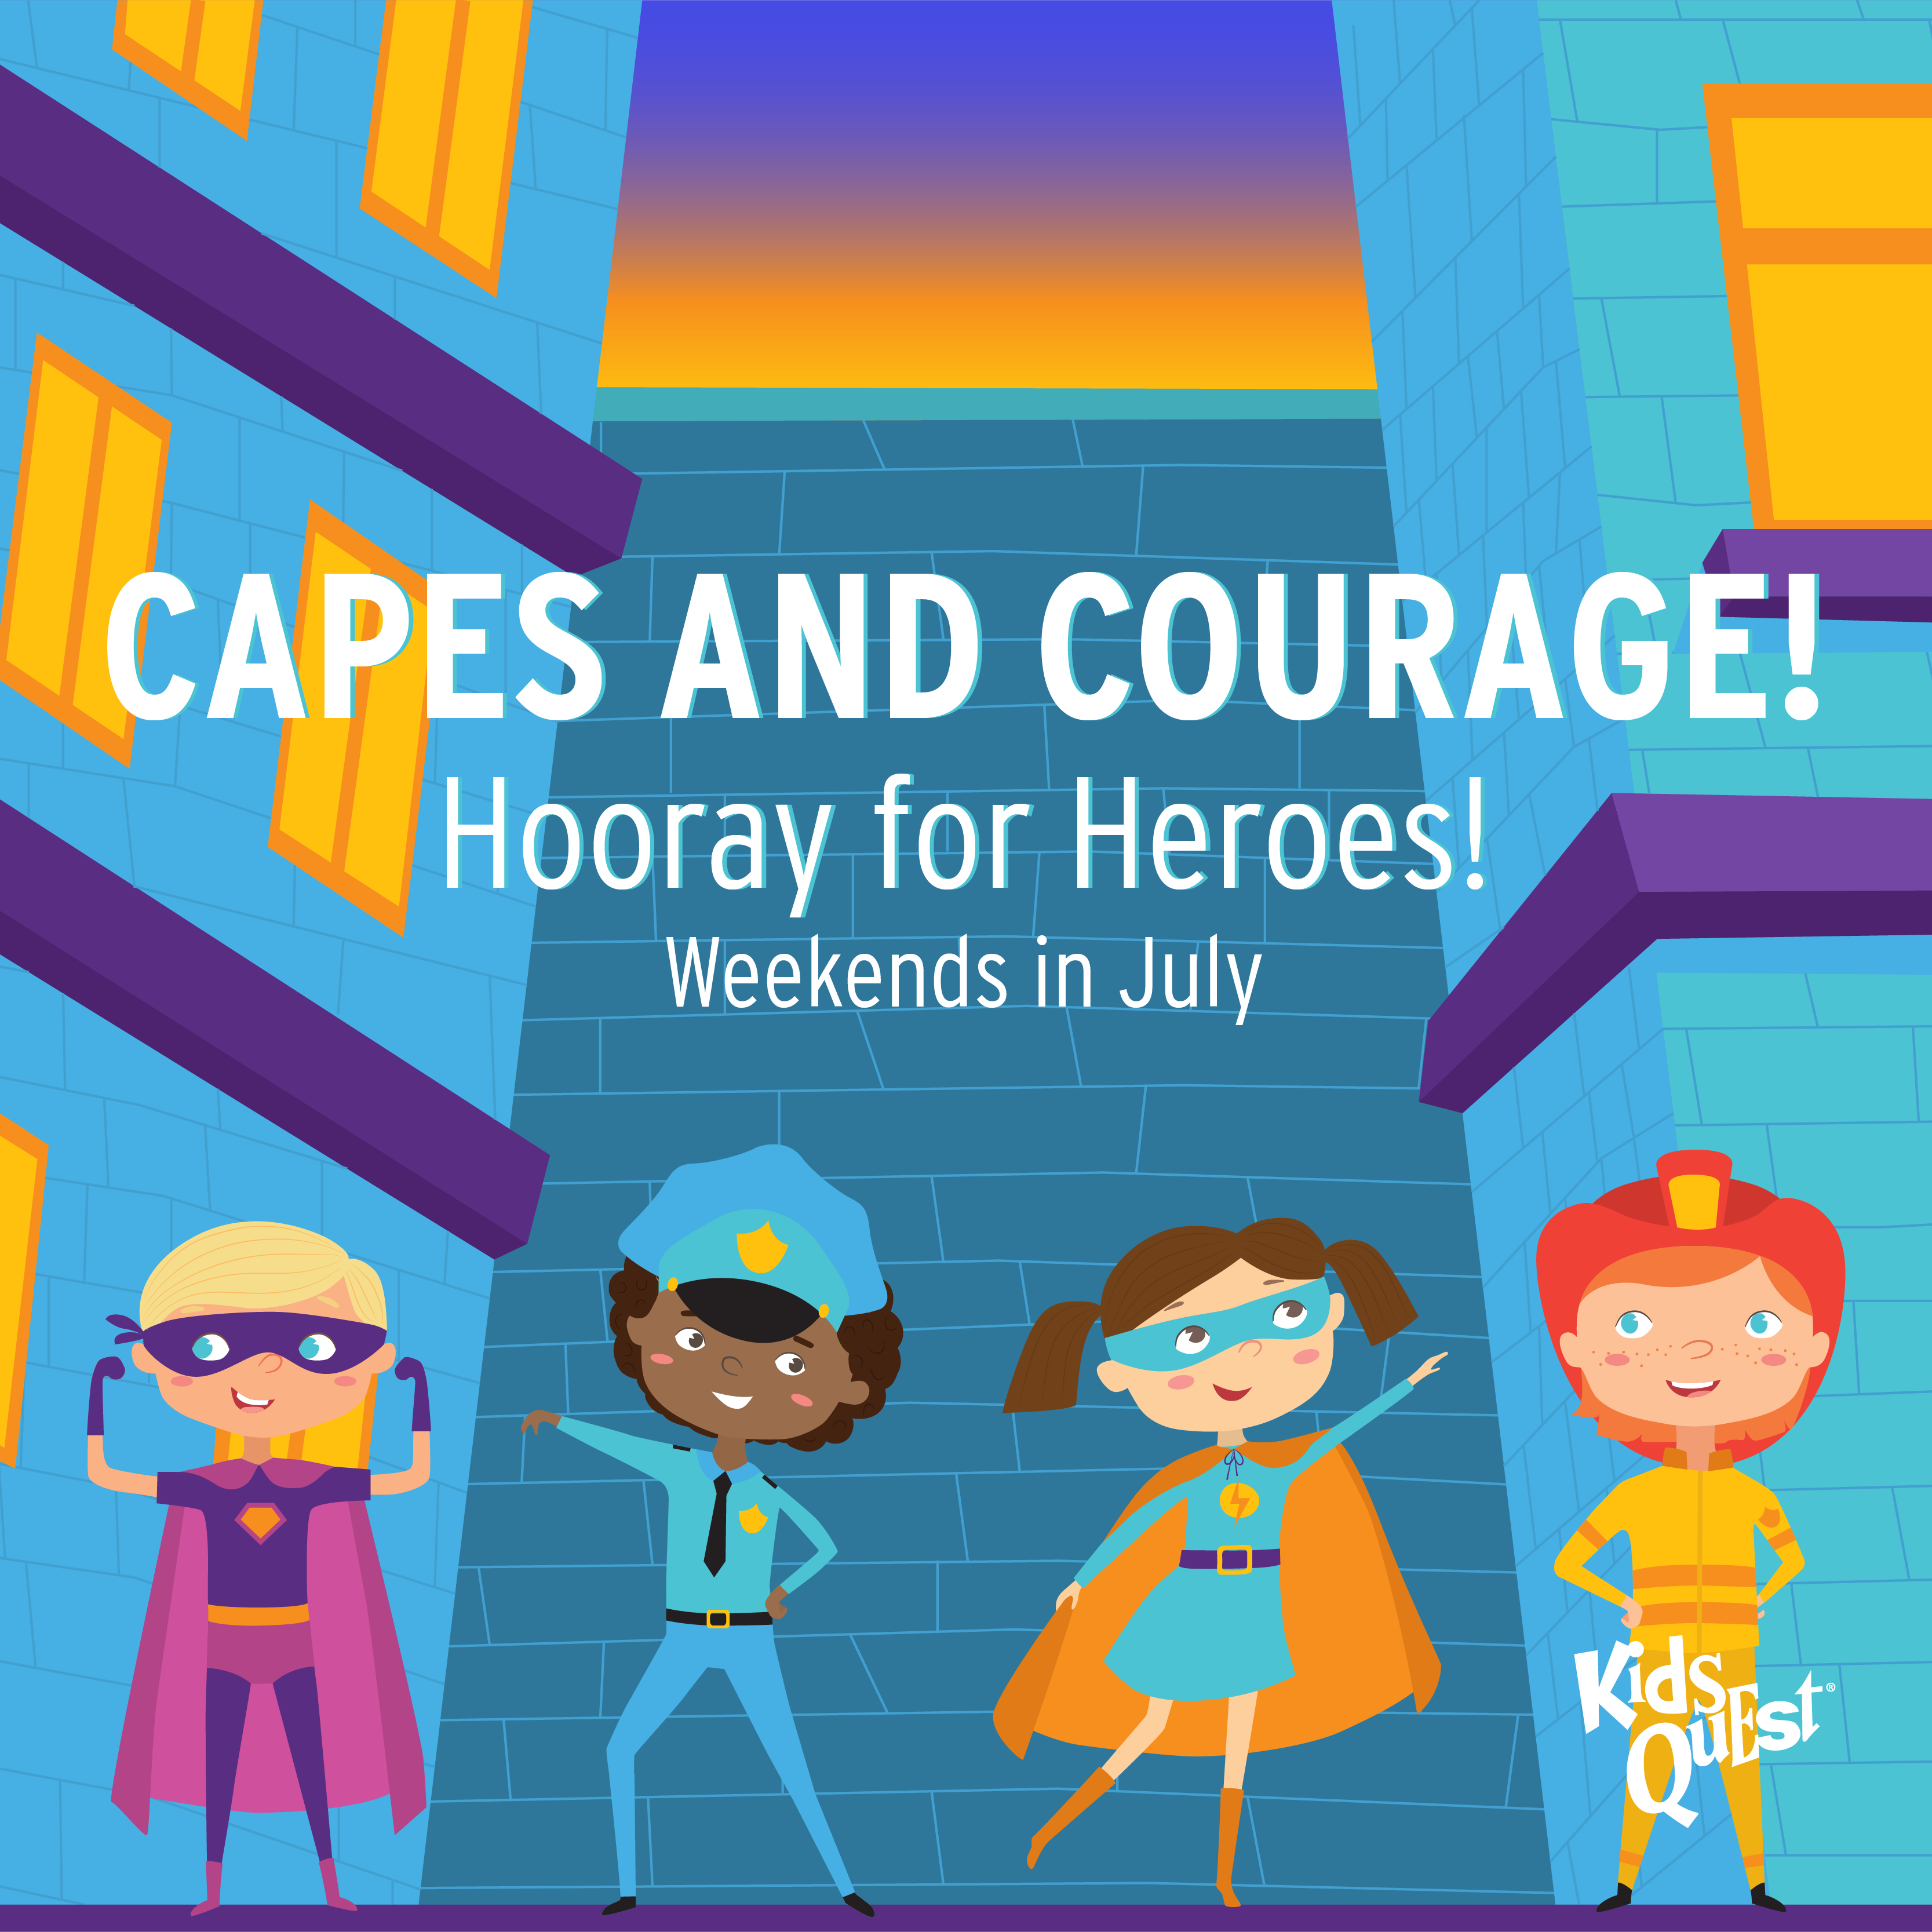 Capes and Courage at Kids Quest